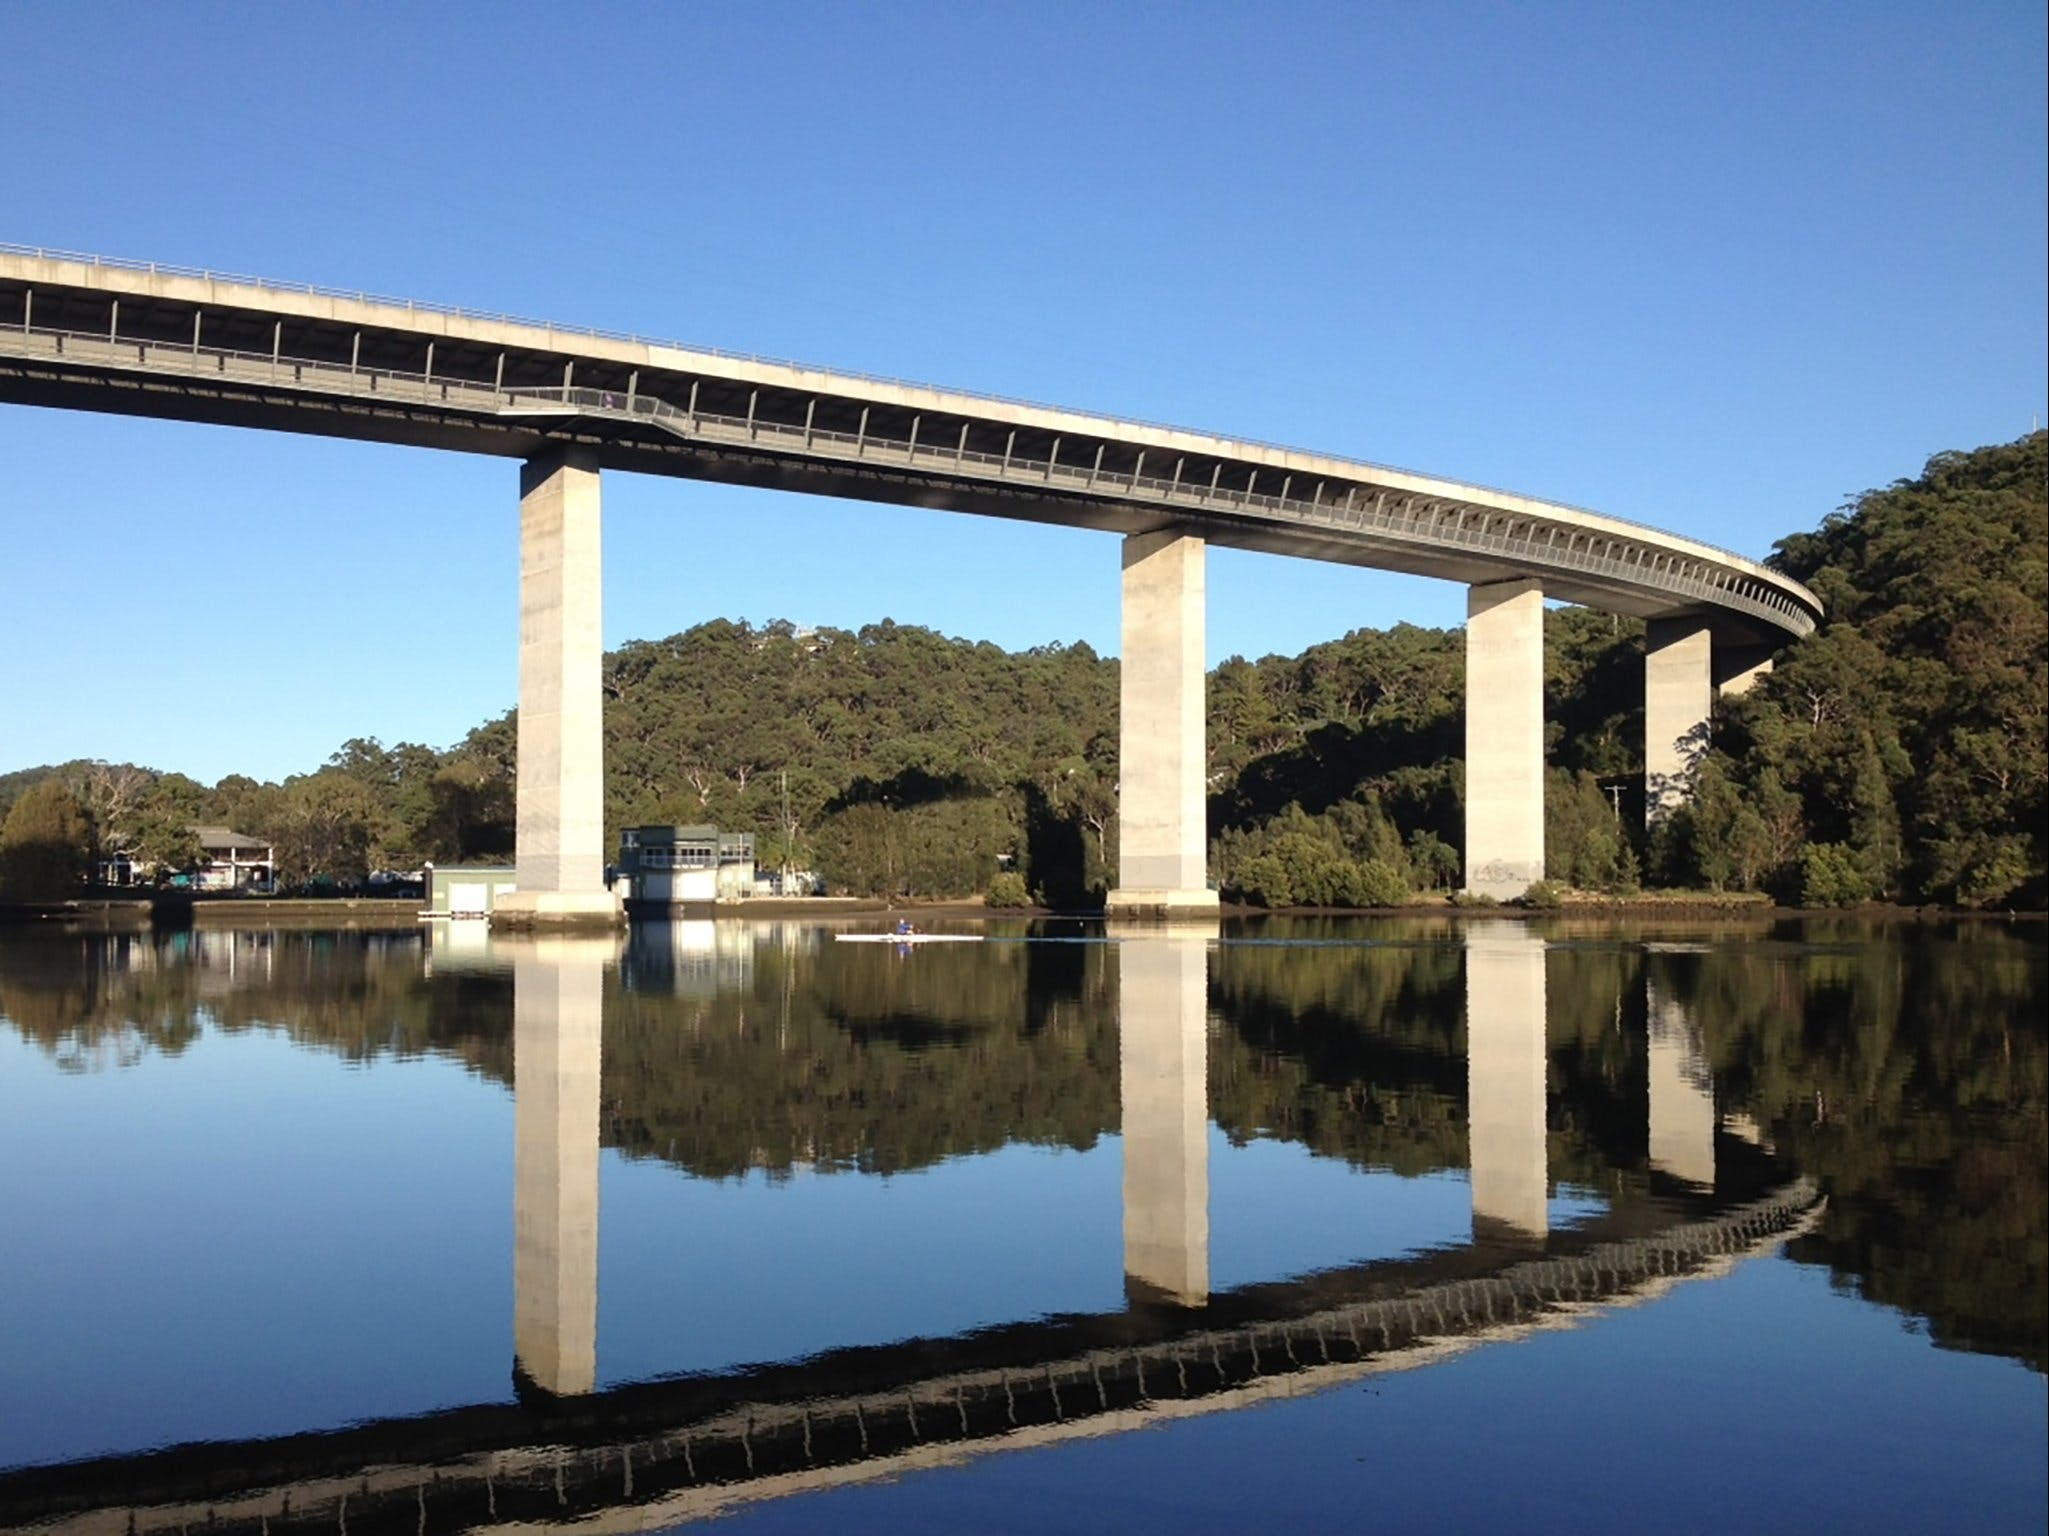 Woronora River - Find Attractions